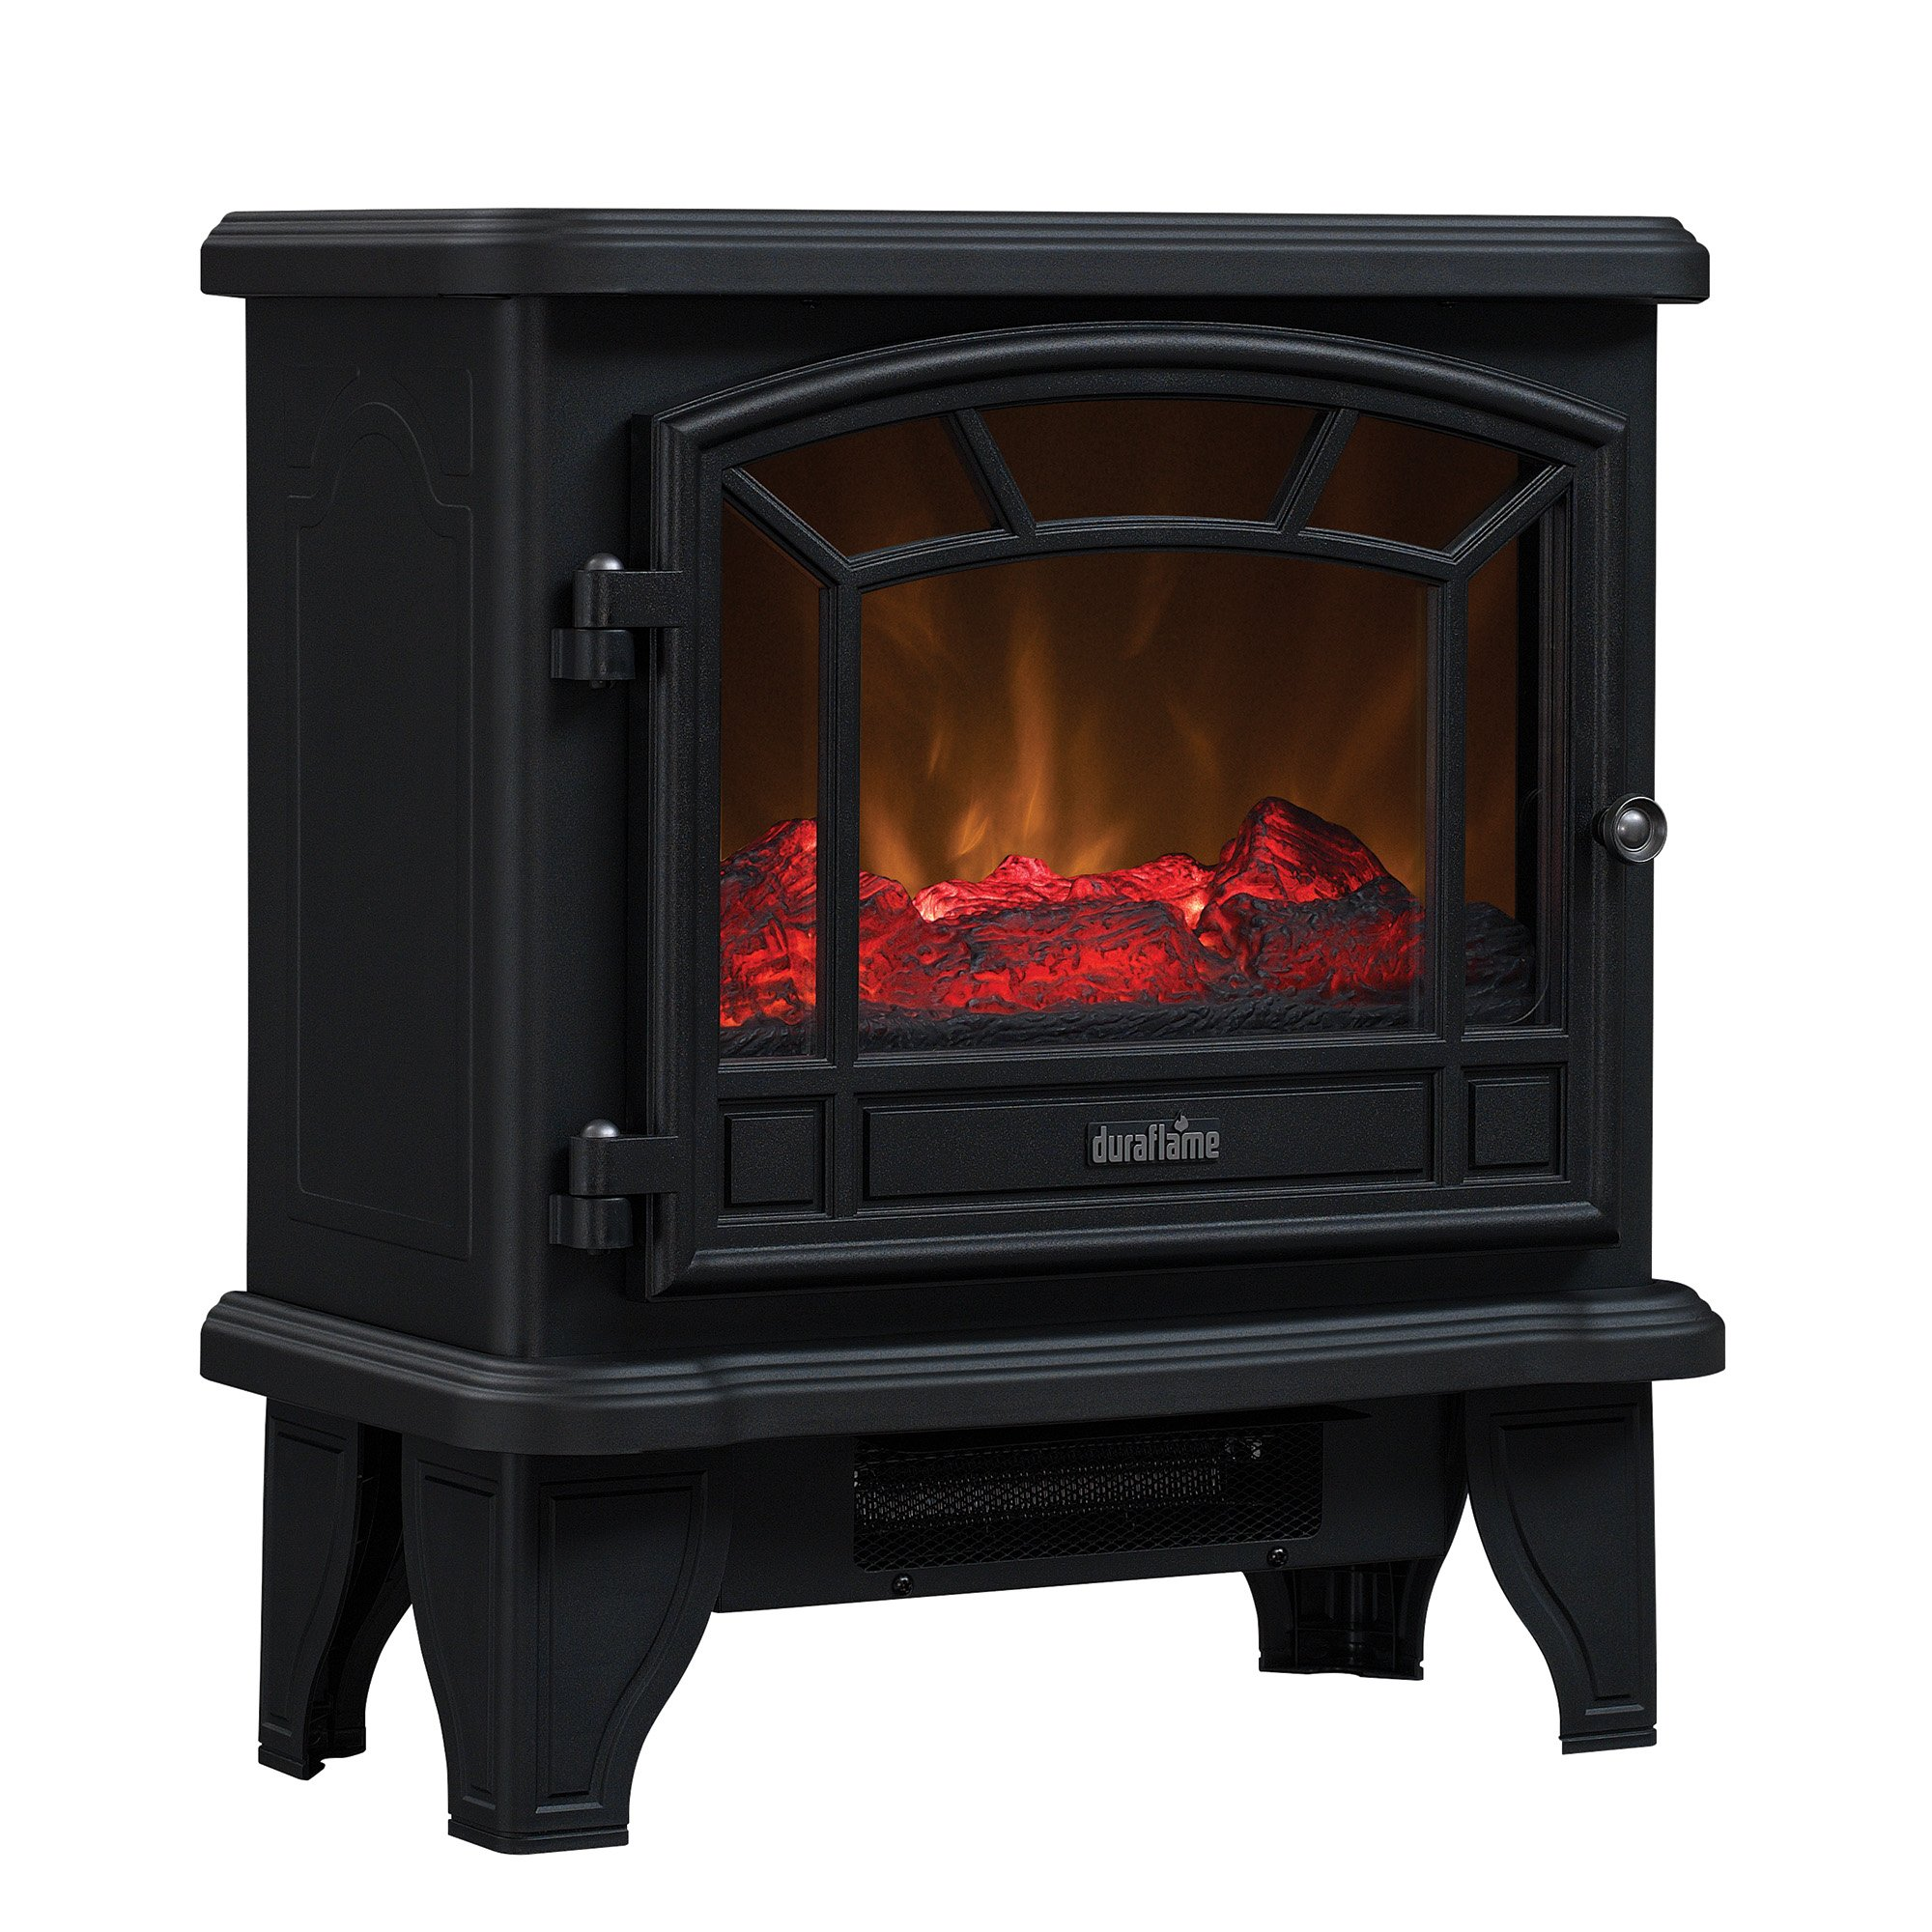 Duraflame DFS-550-21-BLK Maxwell Electric Stove with Heater 1500W, Black by Duraflame Electric